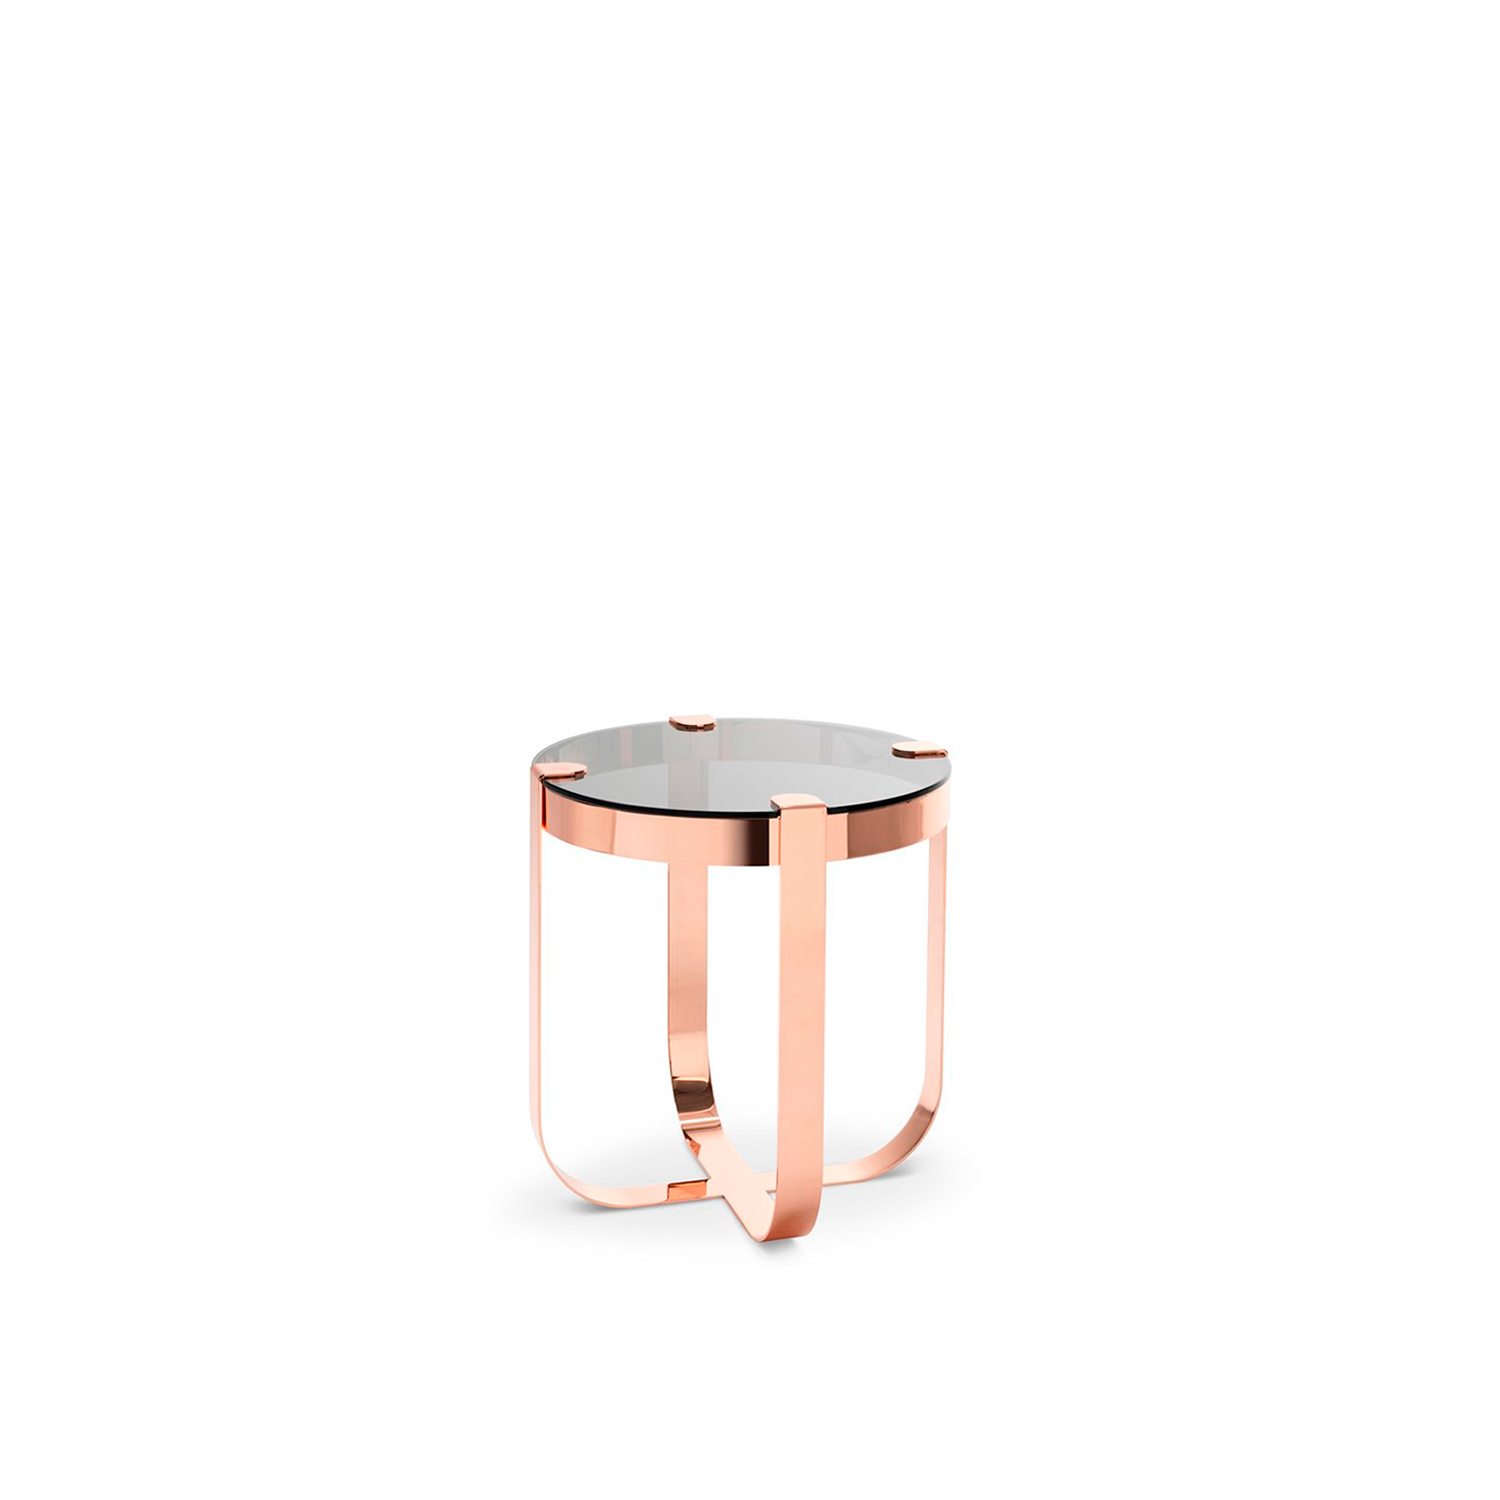 Ring Round Coffee Table - Elegant like jewellery, the Ring coffee tables are inspired by raw cuts of precious stones prior to being mounted into rings. The choice of materials is aimed to emphasise this inspiration behind the collection. The metal base structures are available in copper, brass, steel and nickel, each of which corresponds to a geometric form. Like in jewellery design, the glass tops in transparent or light colours are literally set onto the base structures.  Finishing: Round coffee table polished copper structure - smoked glass top; Square coffee table satin finished brass structure - extra clear glass top; Octagonal coffee table black nickel structure - bronze glass top; Oval coffee table clear chrome structure - sea water glass. | Matter of Stuff